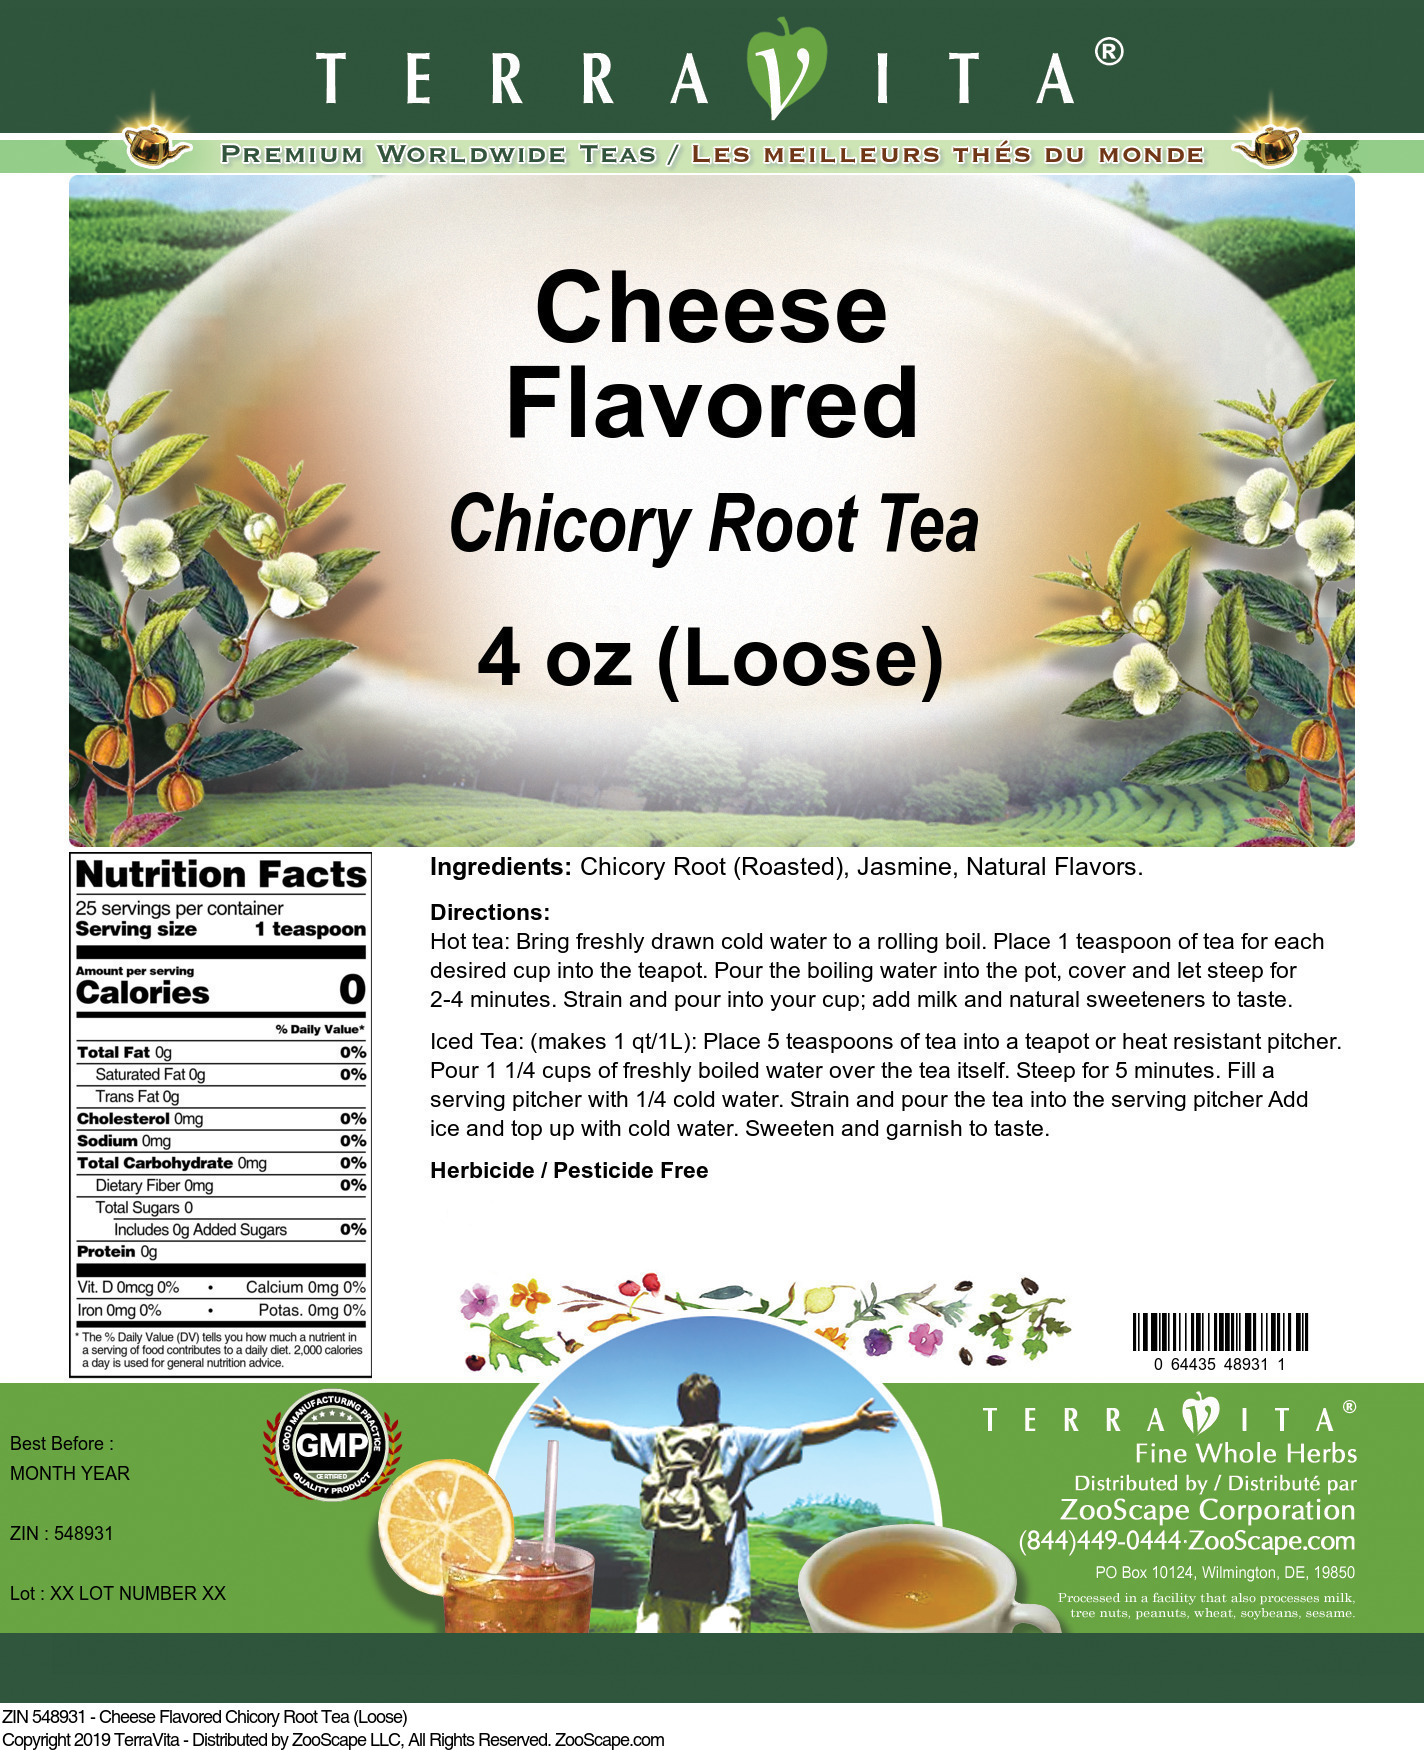 Cheese Flavored Chicory Root